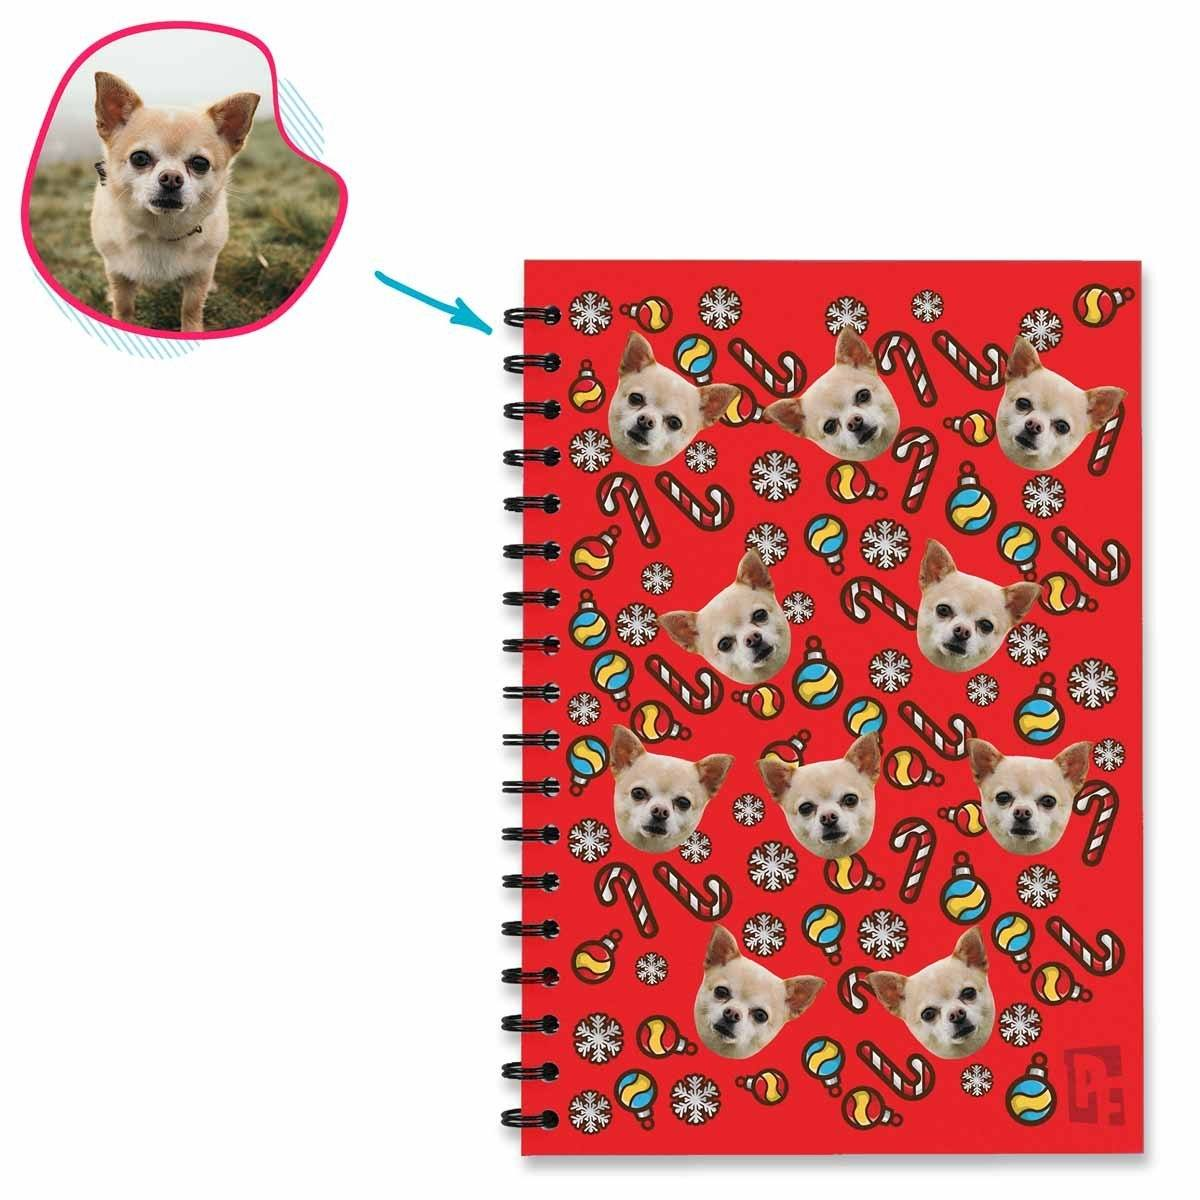 red Christmas Tree Toy Notebook personalized with photo of face printed on them